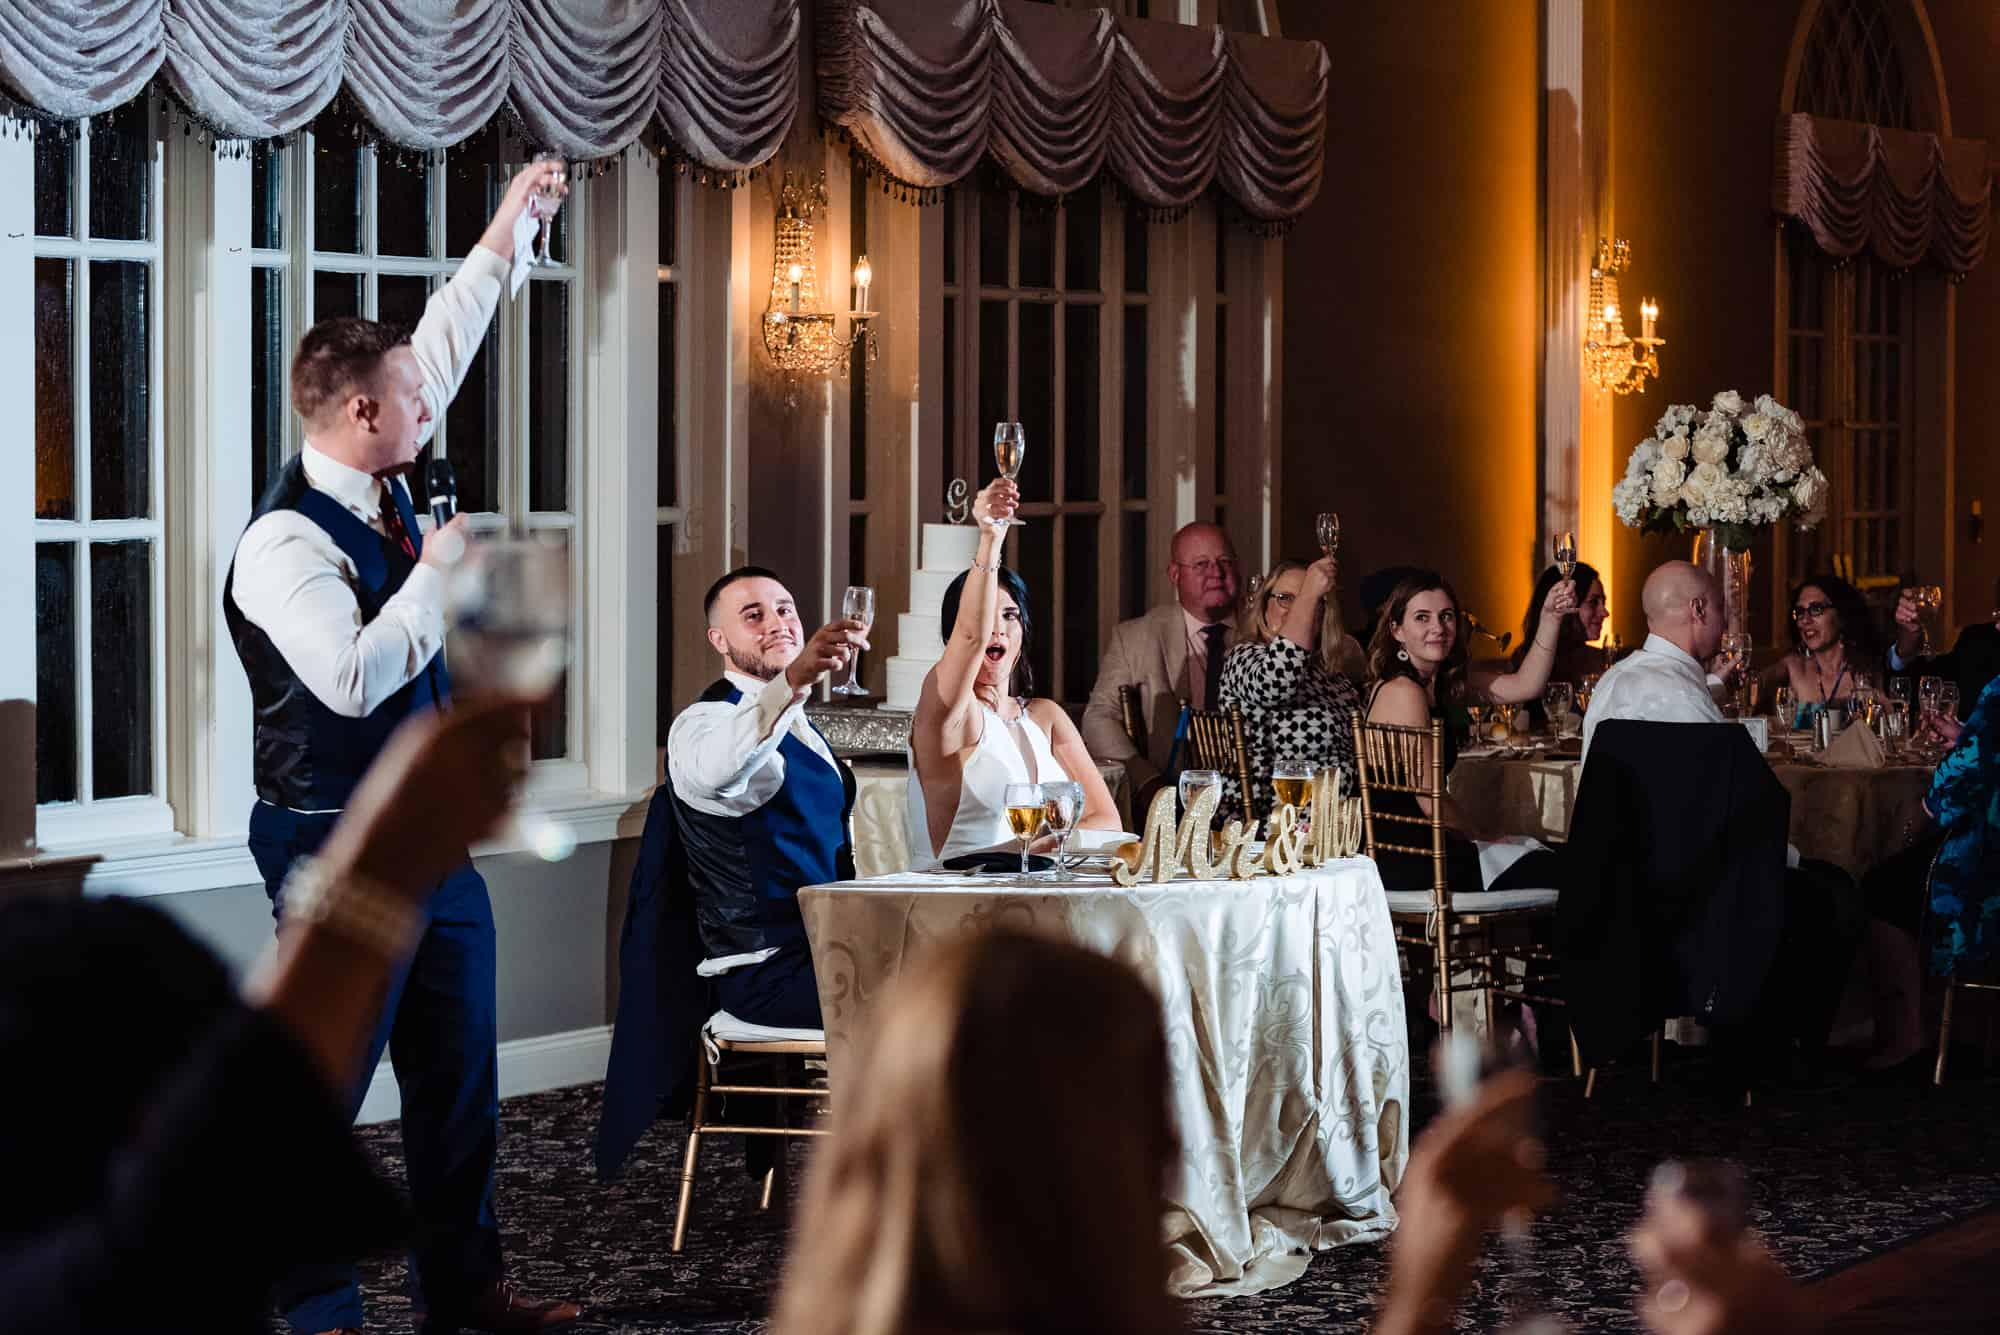 wedding reception, guests holding champagne glasses in the air for a toast